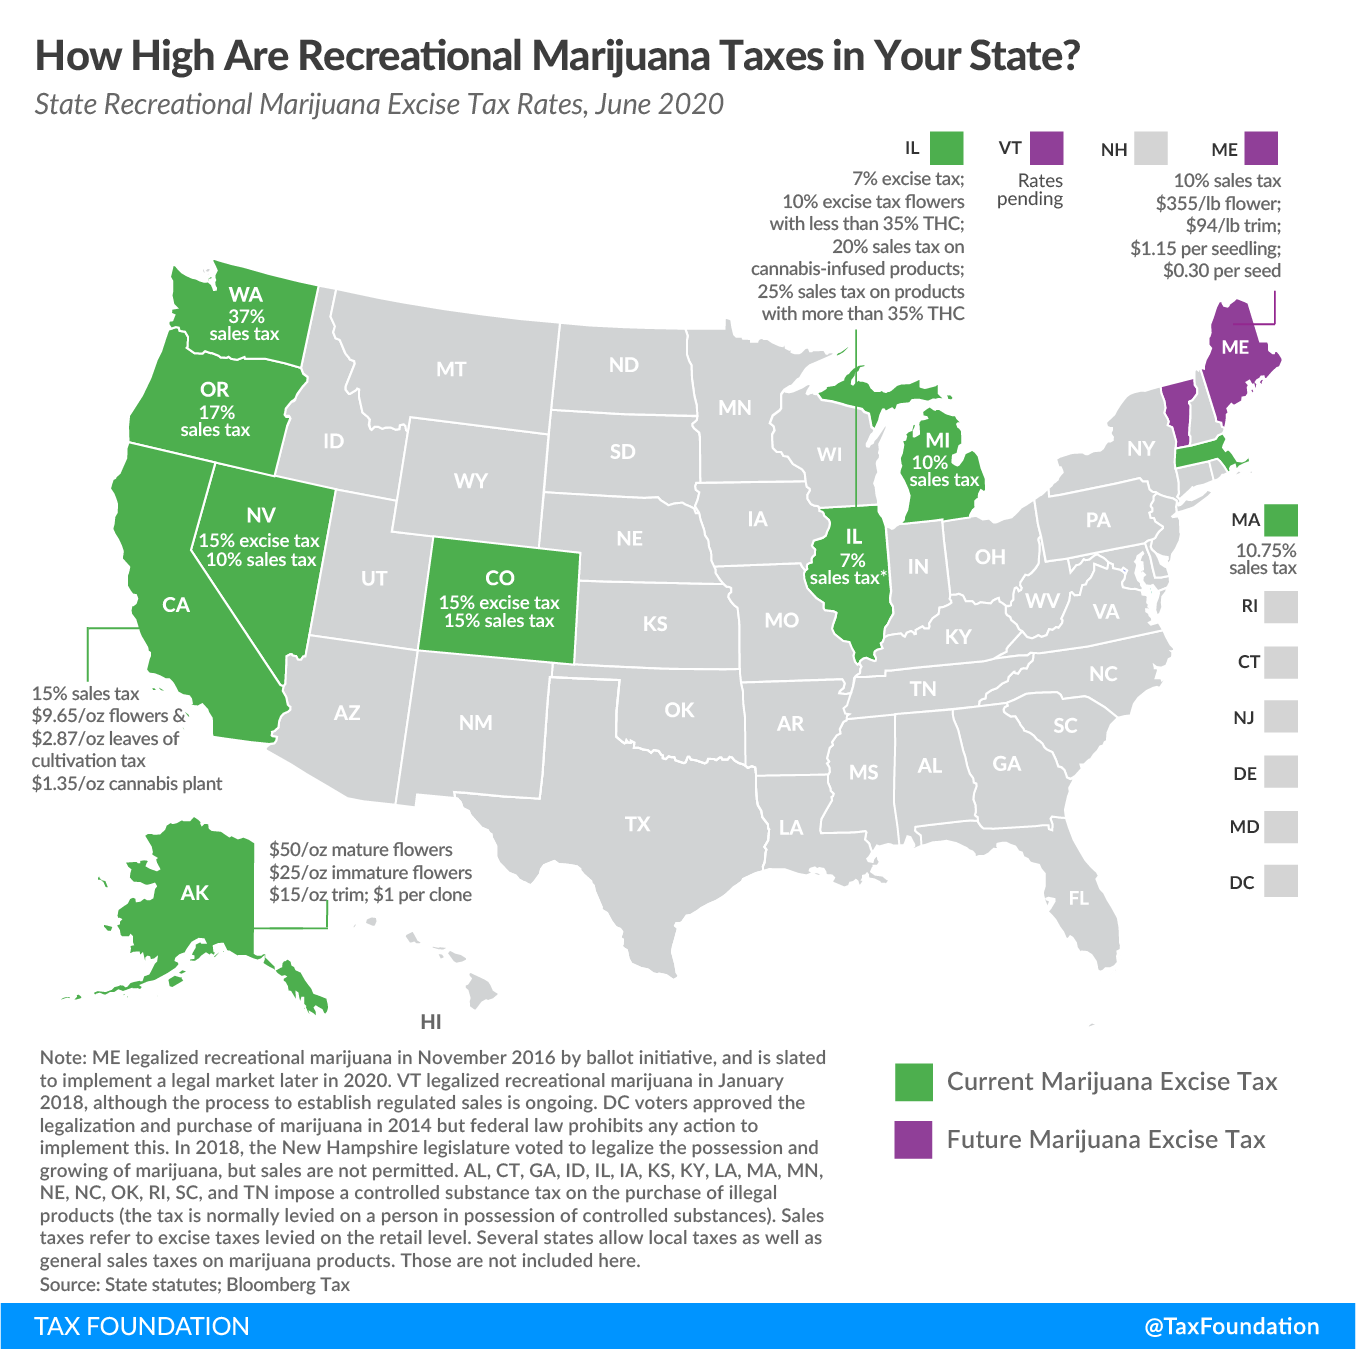 state excise taxes on recreational marijuana 2020, state marijuana tax rates, state recreational marijuana tax rates, state cannabis taxes